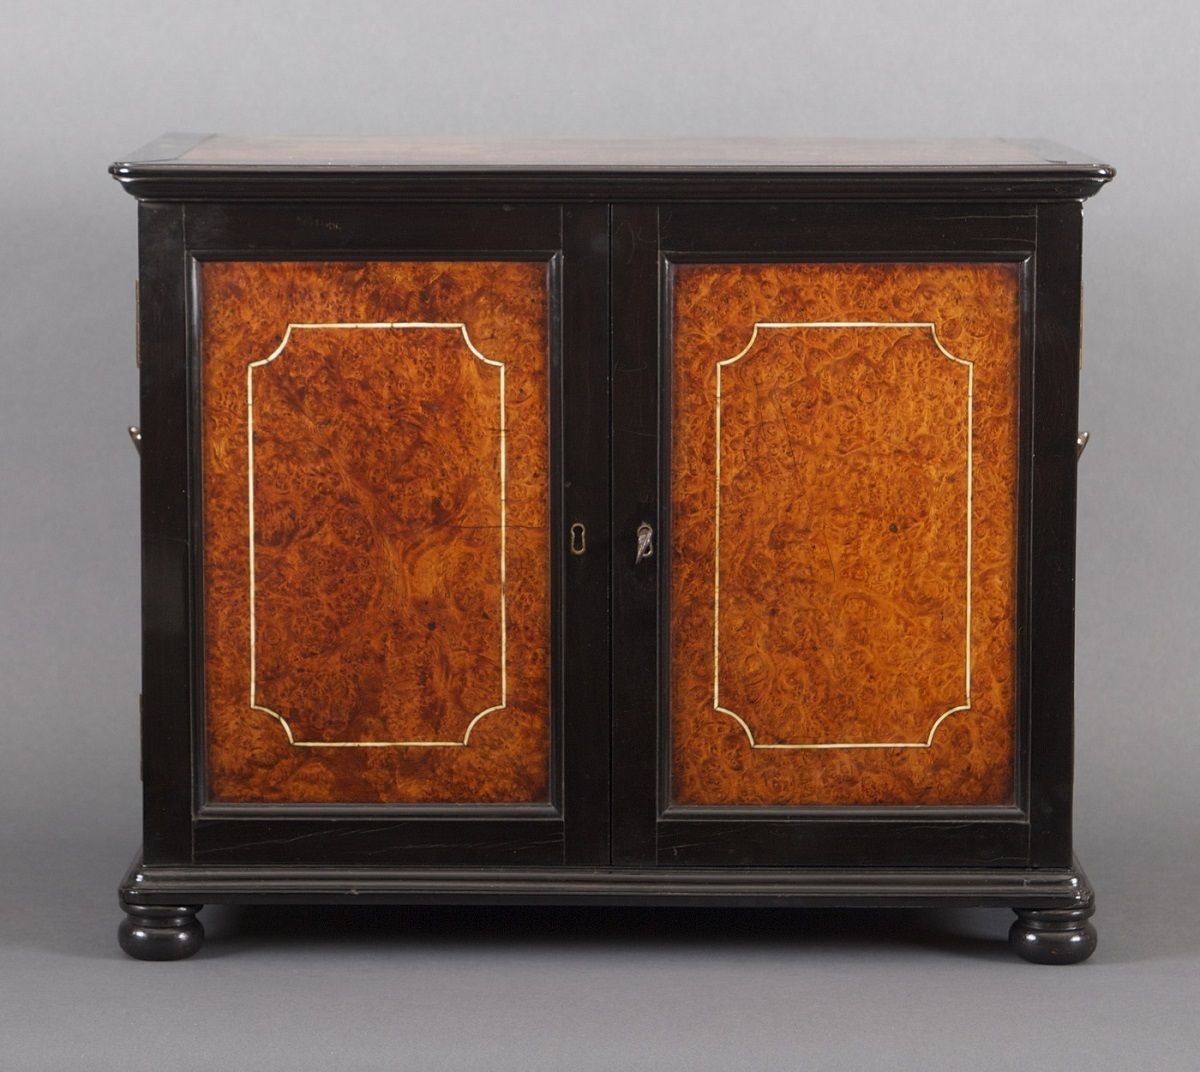 Amboyna and Ebony Veneered Table Cabinet